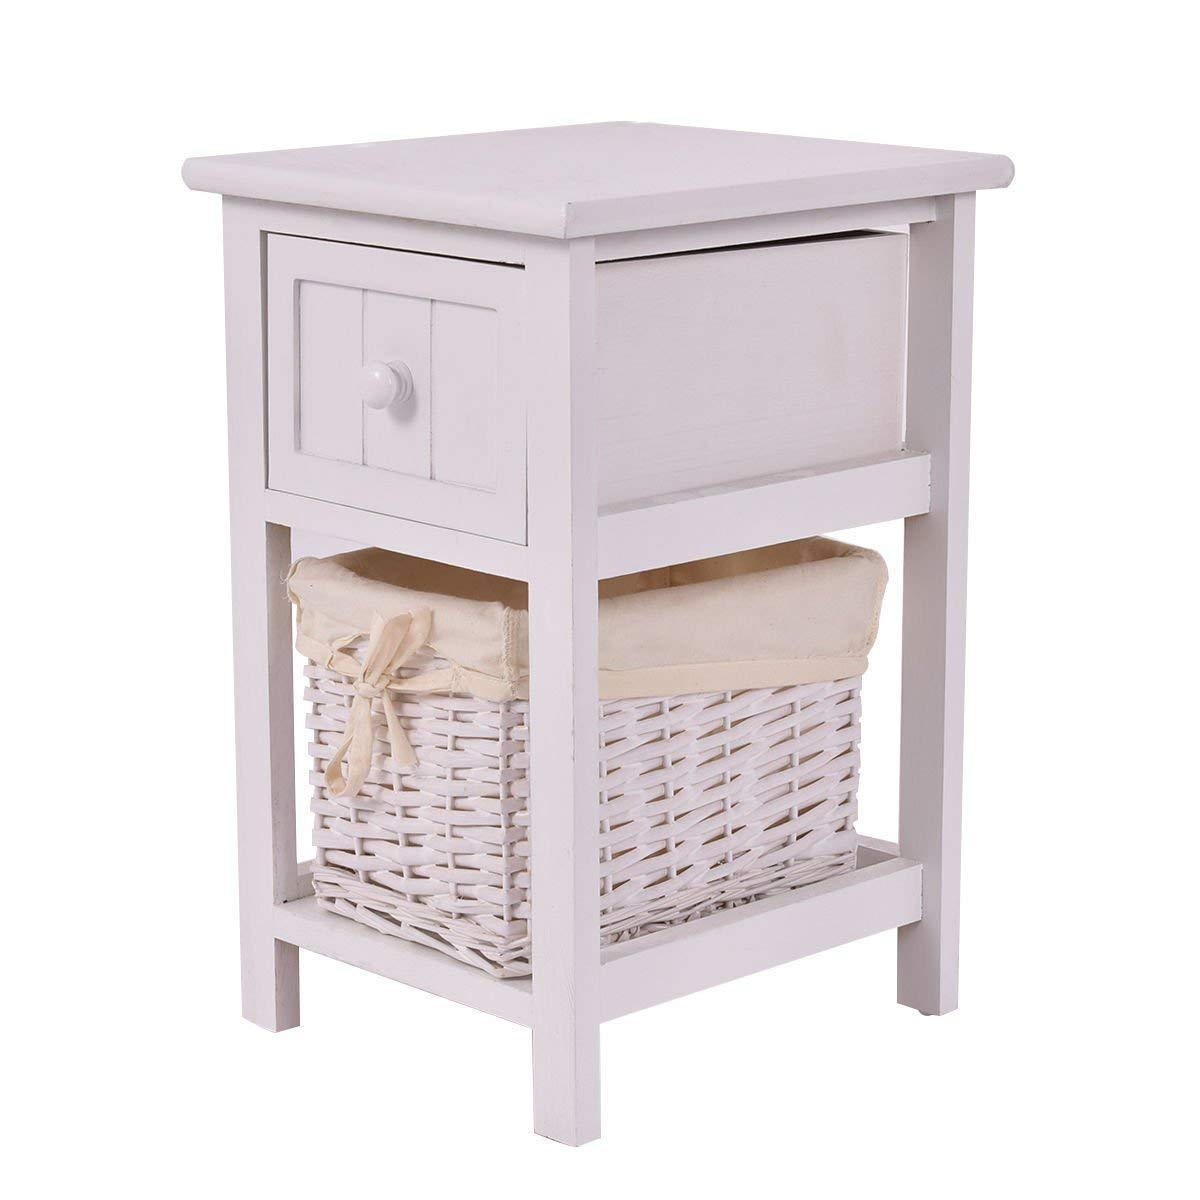 Giantex Nightstand with Drawer and Layer, Wicker Basket Wooden Mini Organizer for Bedroom Bedside Sofa End Table (1, White) by Giantex